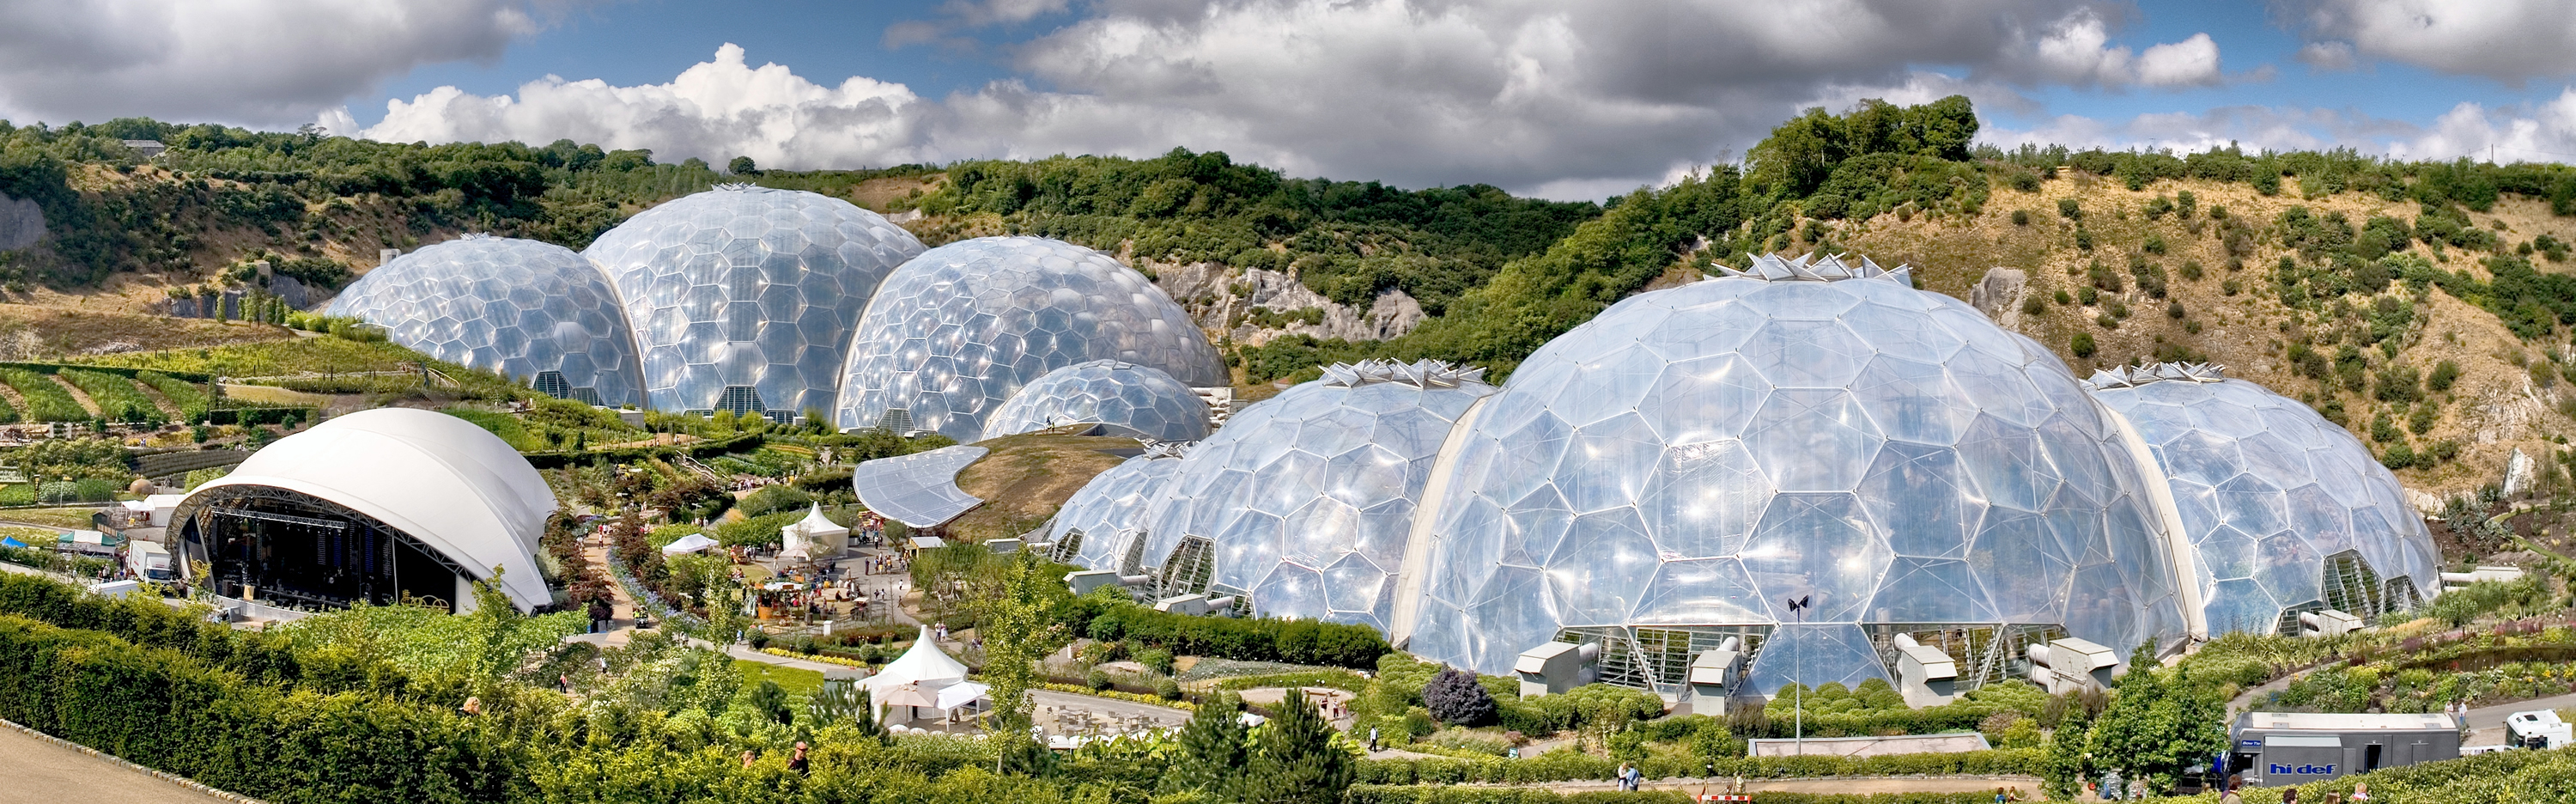 Cornwall in england makes top 10 vacation destinations - The geodesic dome in connecticut call of earth ...